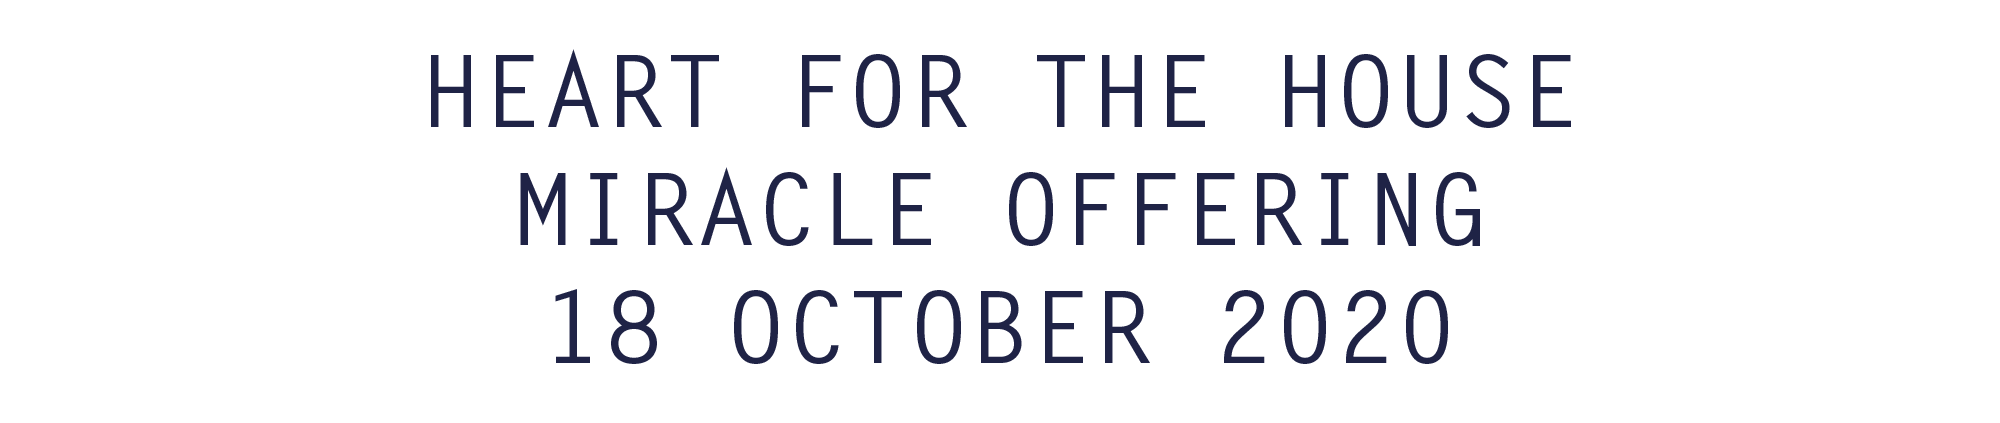 Heart for the House Miracle Offering – 18 October 2020